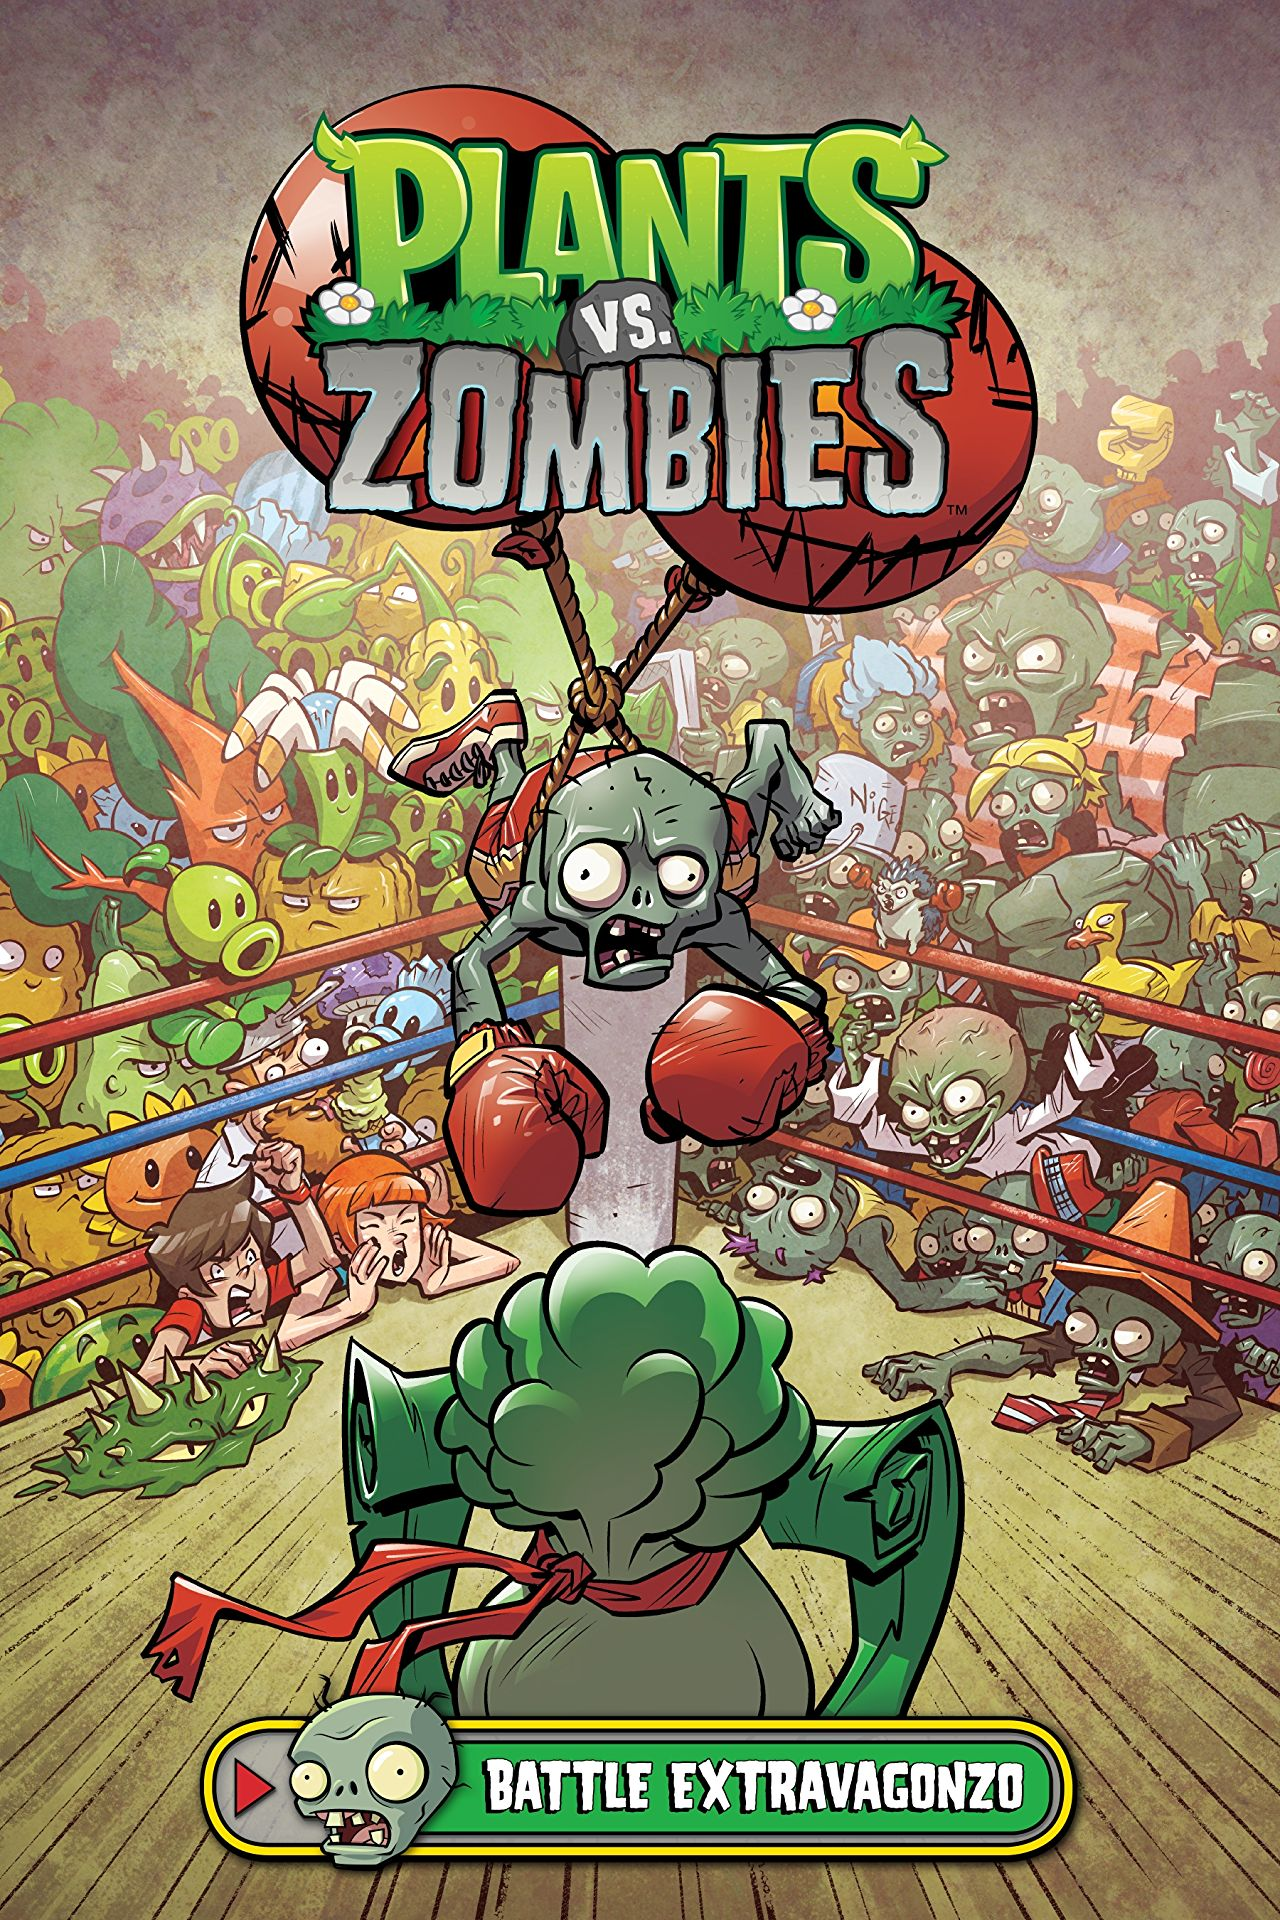 Plants vs. Zombies Boxed Set 3 (Plants Vs. Zombies Set) review: fun illustrations, zombies in luchadore masks -- what else does your inner 8-year-old need?